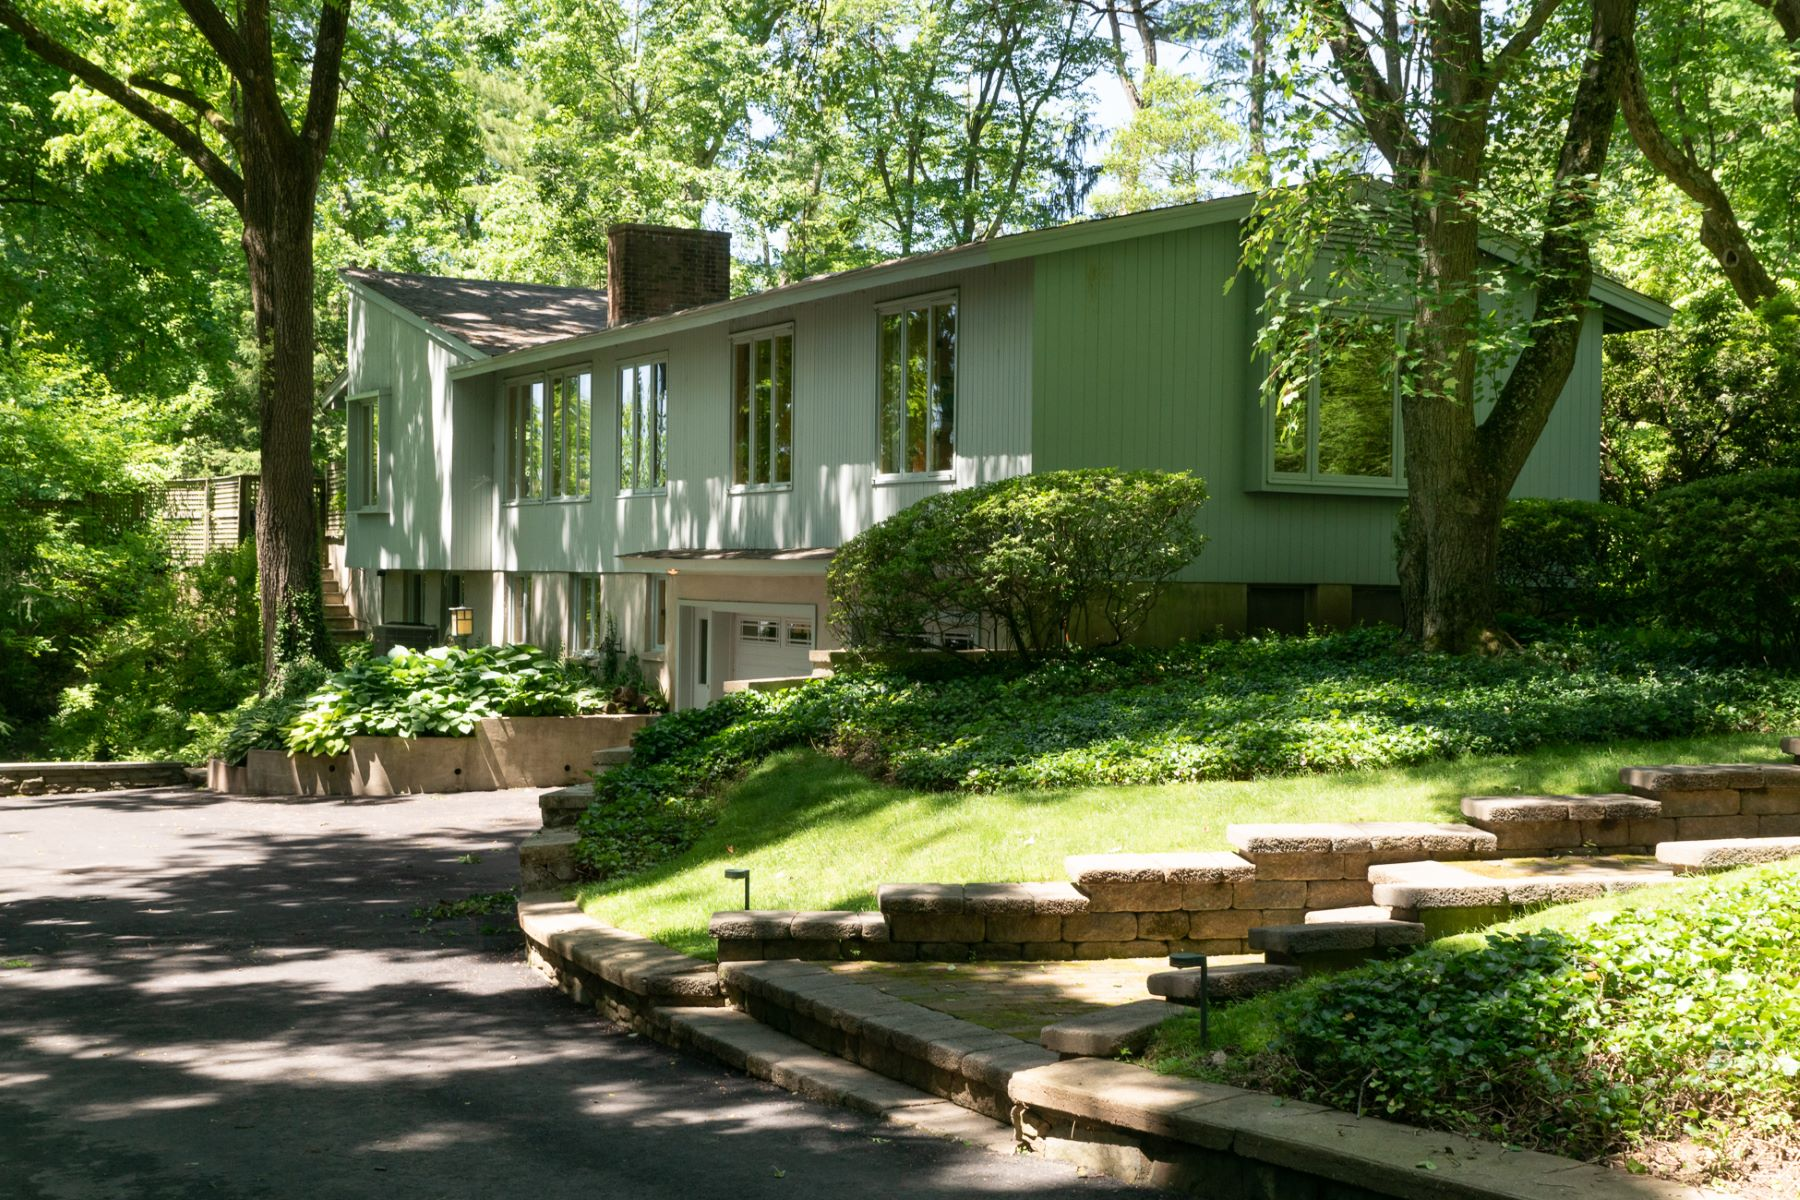 Property for Sale at Wrapping Gardens Beguile at Mid-Century Modern 30 Russell Road, Princeton, New Jersey 08540 United States